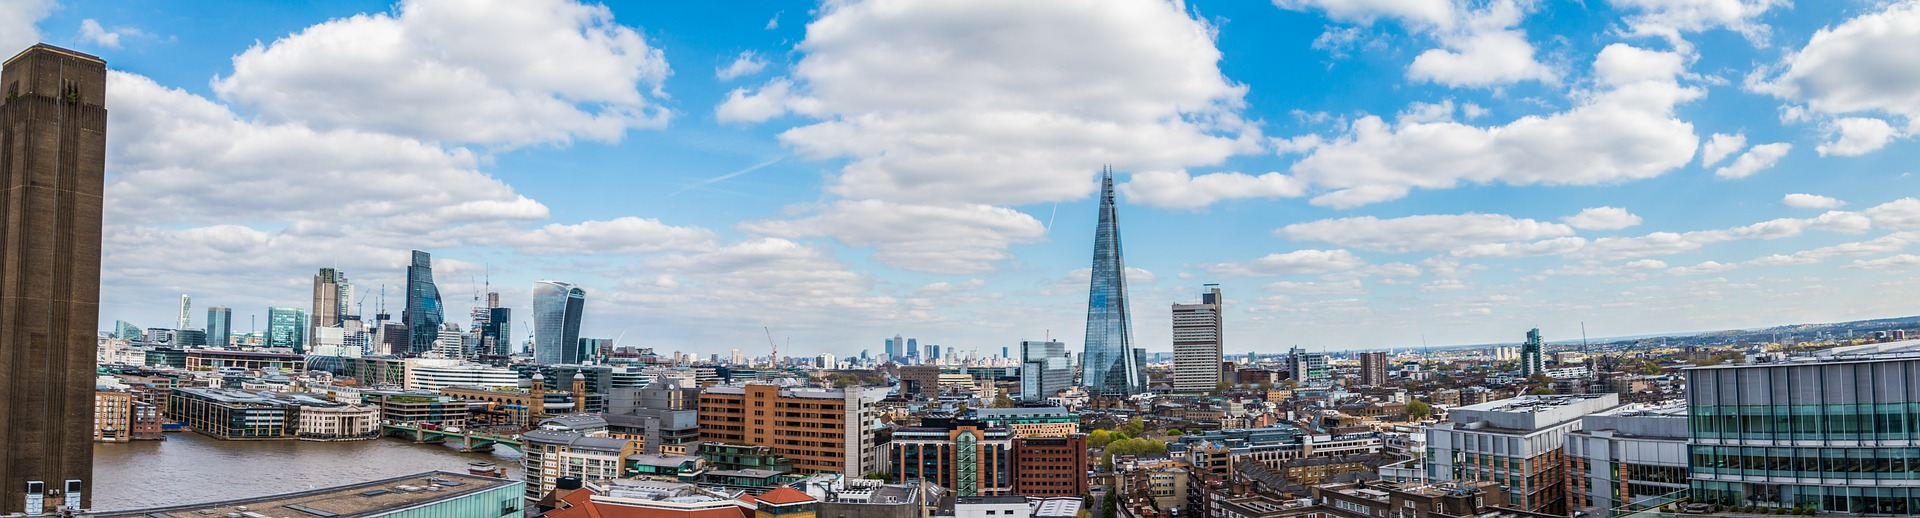 The London economy proves Britain's enduring appeal